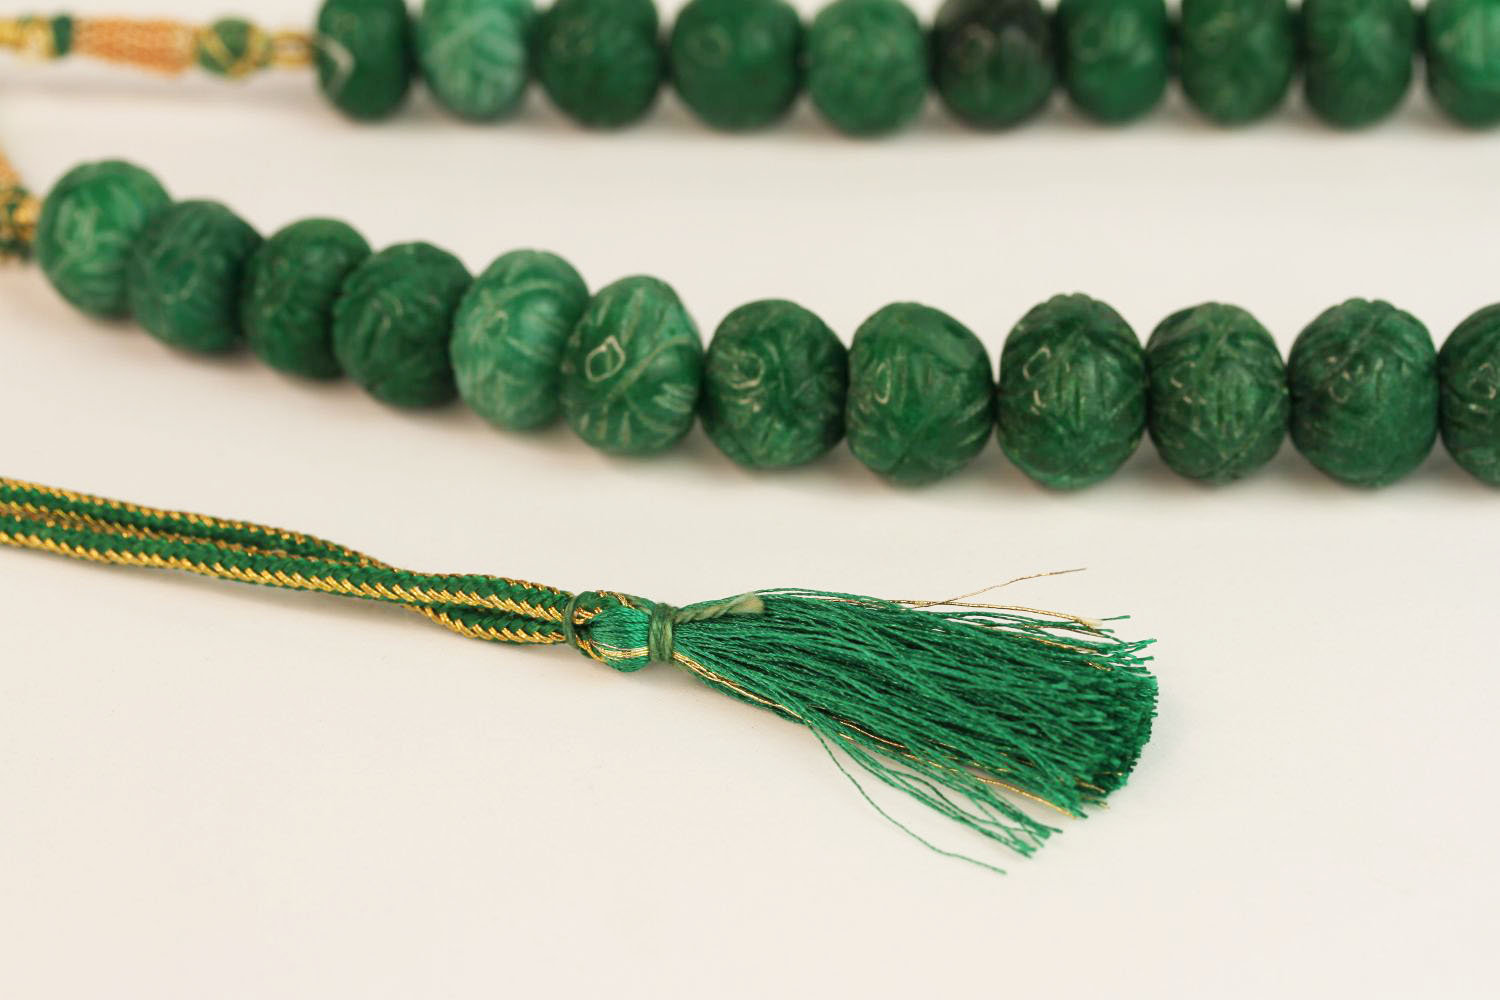 Weighty earth-mined carved natural emerald bead necklace with woven, adjustable slip knot and - Image 3 of 4